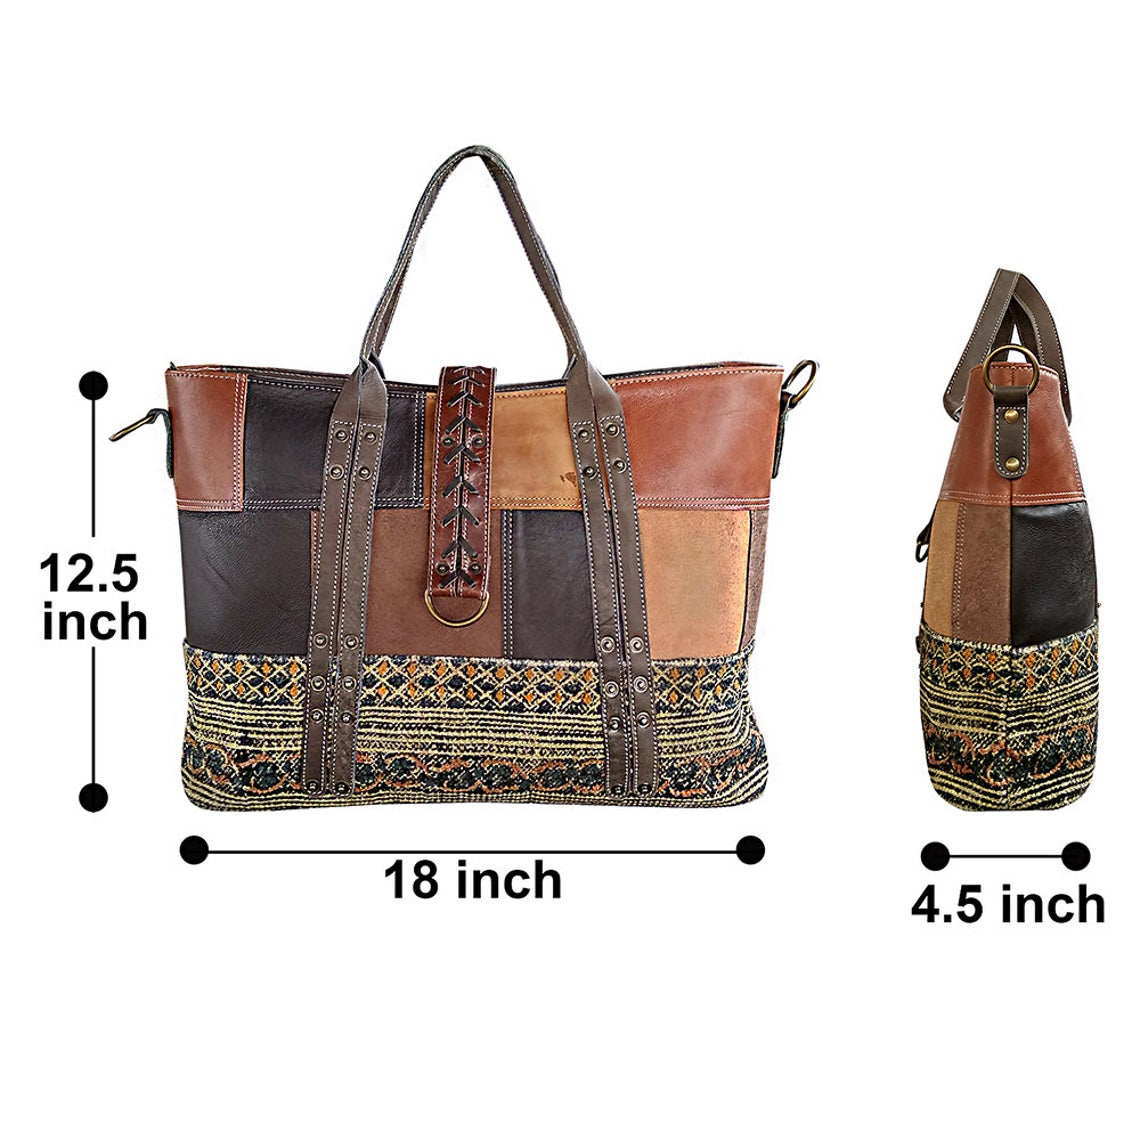 Woven Fabric Leather Shoulder Bag Women Handbag Women Tote Shopping Bag Fabric Shoulder Purse Boho Tote